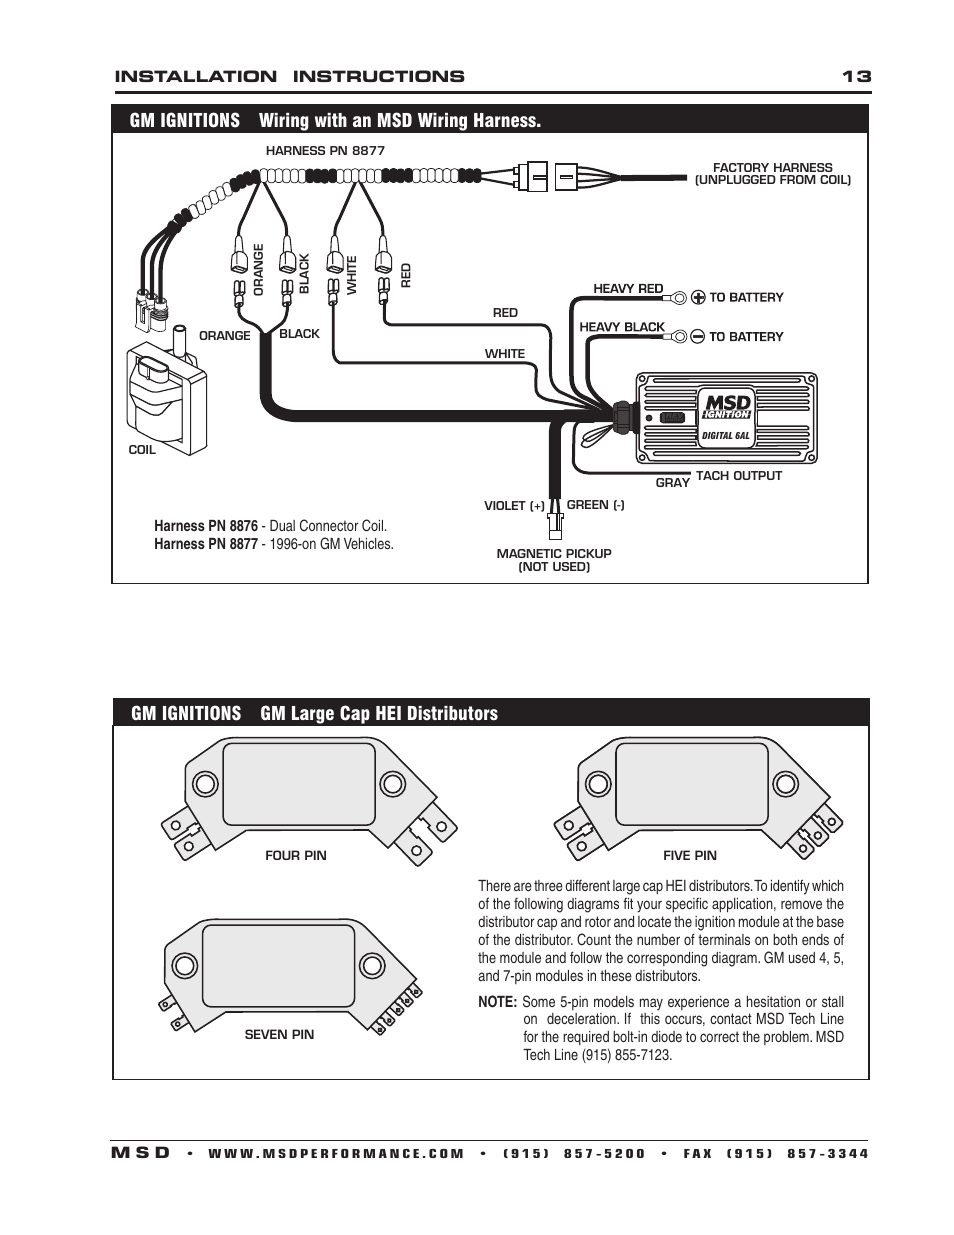 Wrx Coil On Plug Wiring Diagram Get Free Image About Wiring Diagram